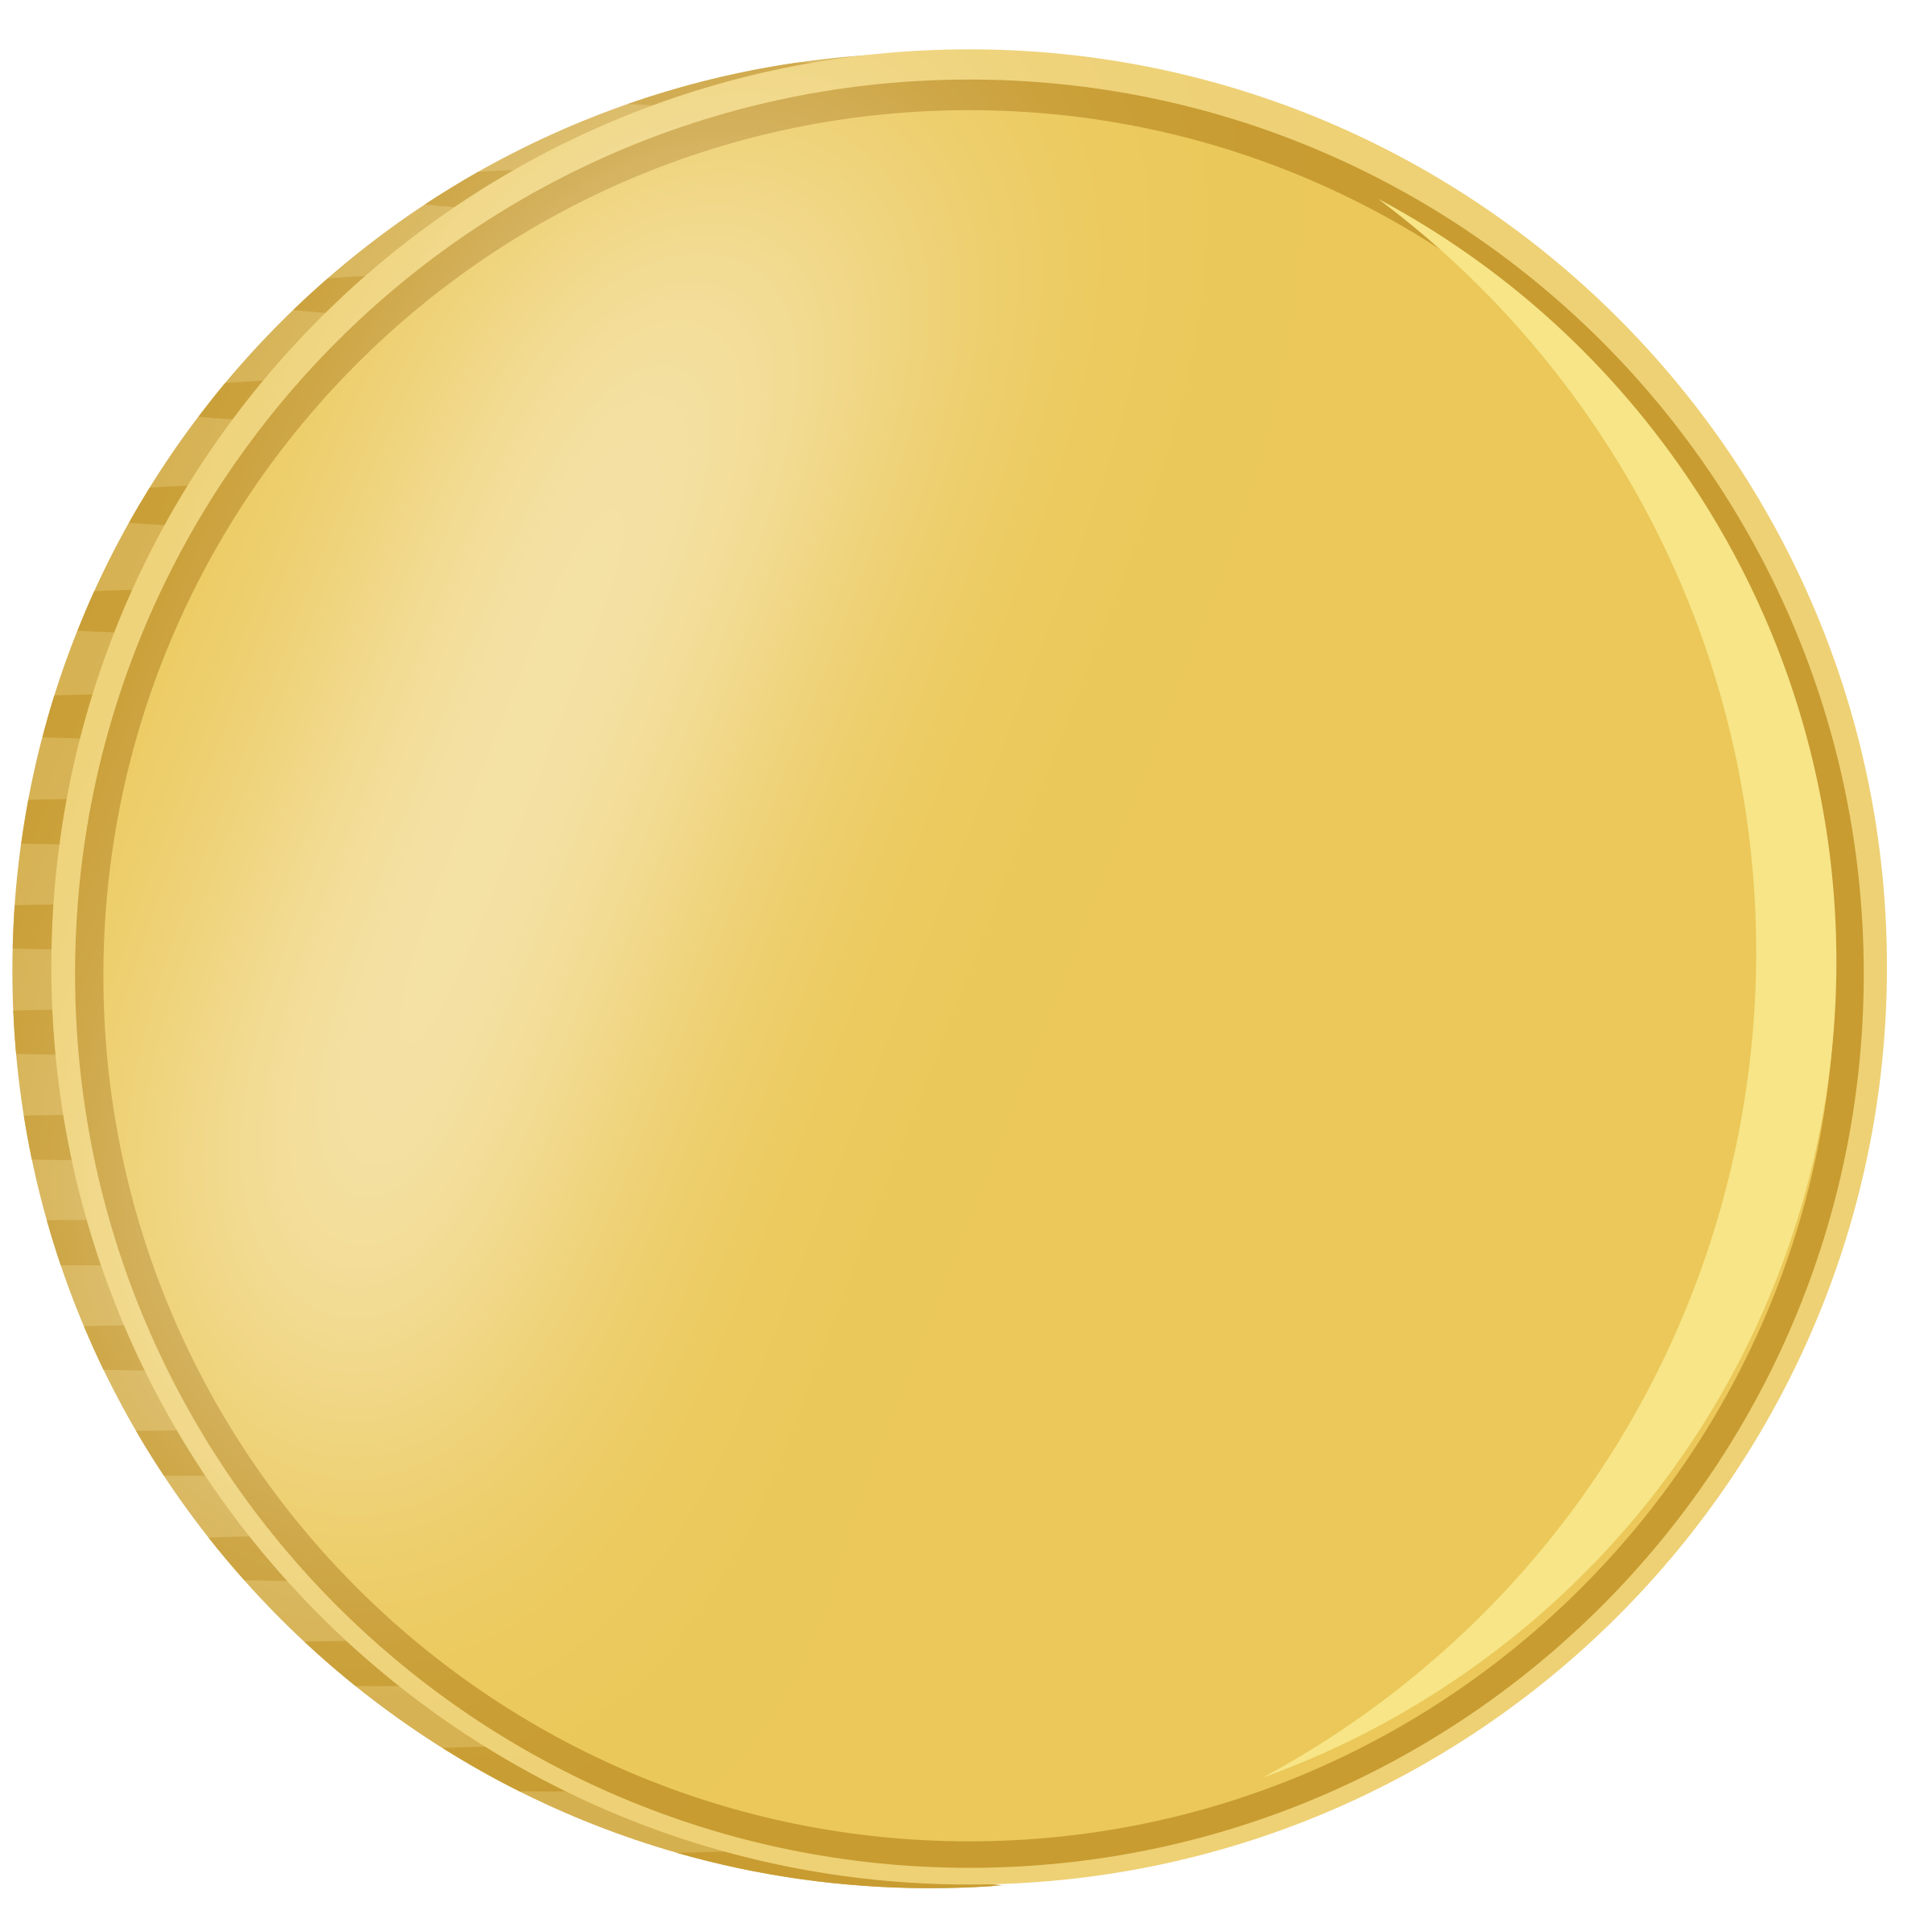 Blank Gold Coin Png | www.imgkid pluspng.com - The Image Kid Has It PlusPng.com  - Blank Coin PNG